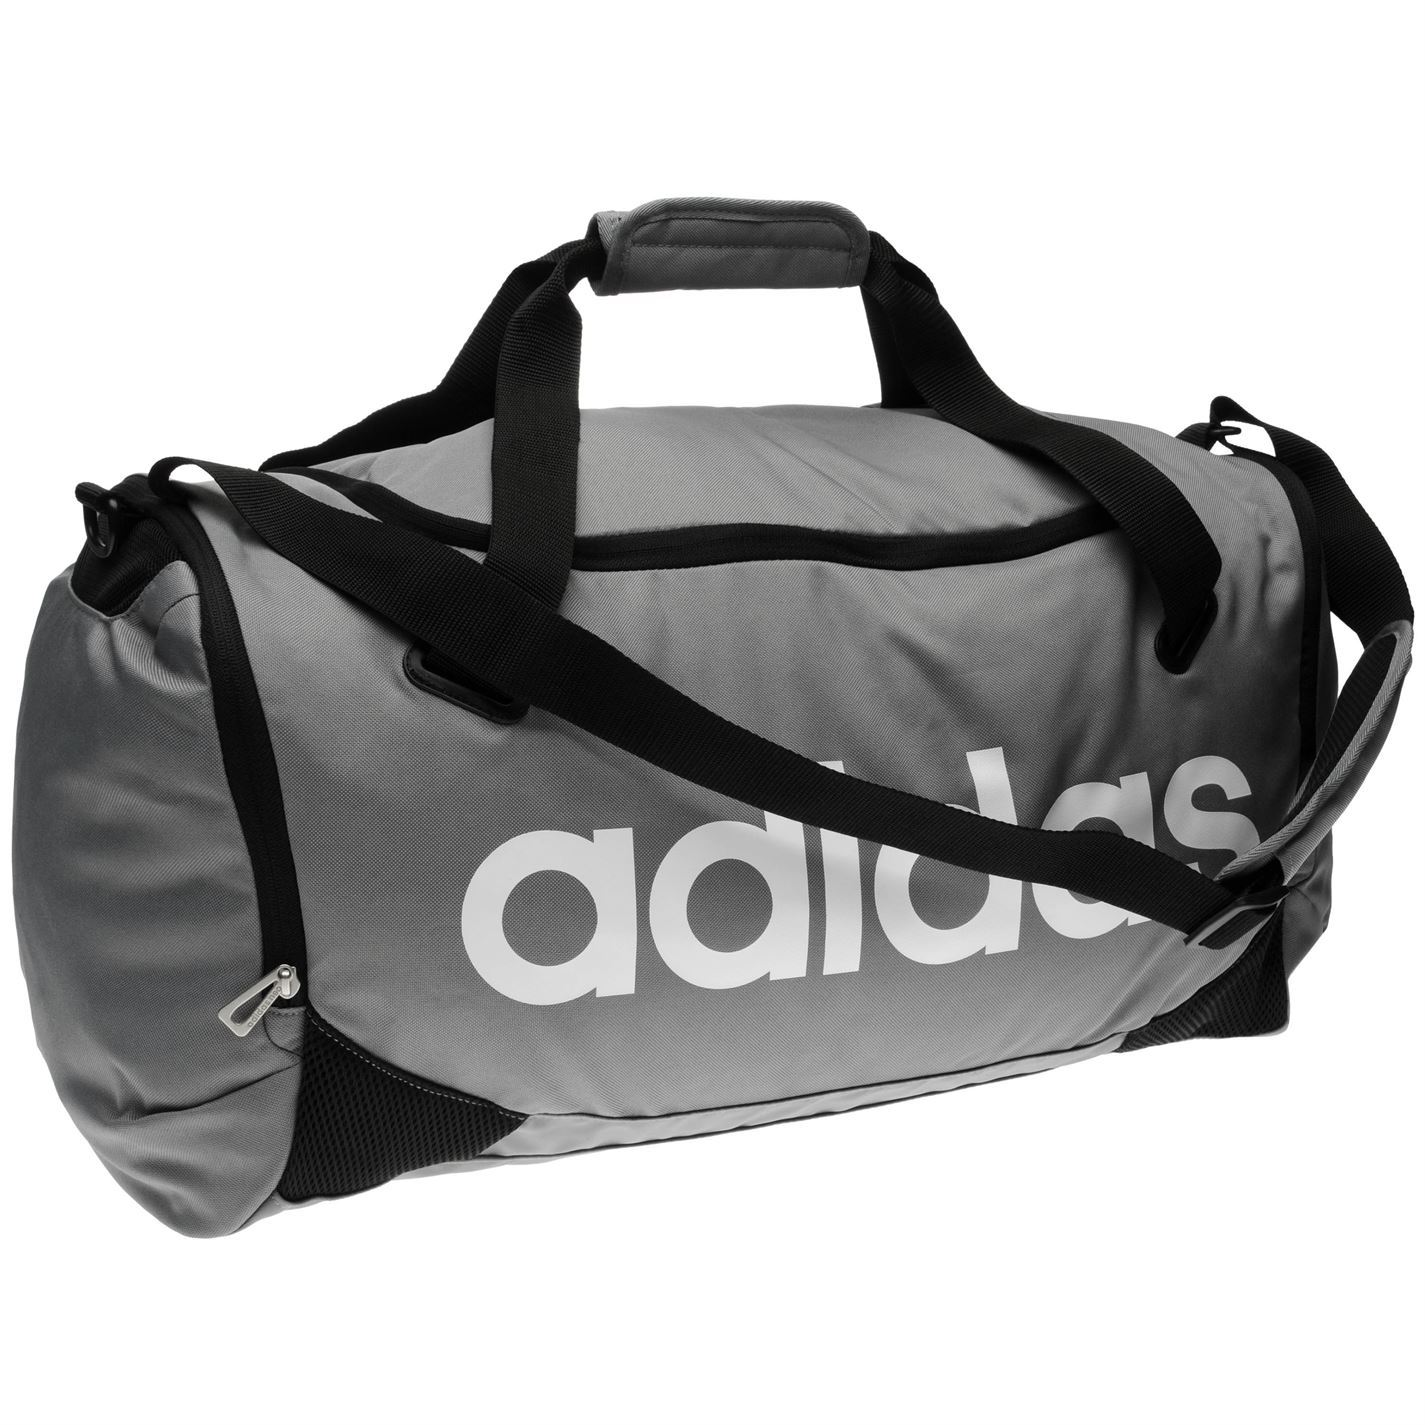 da1339f5cd cheap for discount 4bac2 0329c adidas adidas linear team bag medium ...